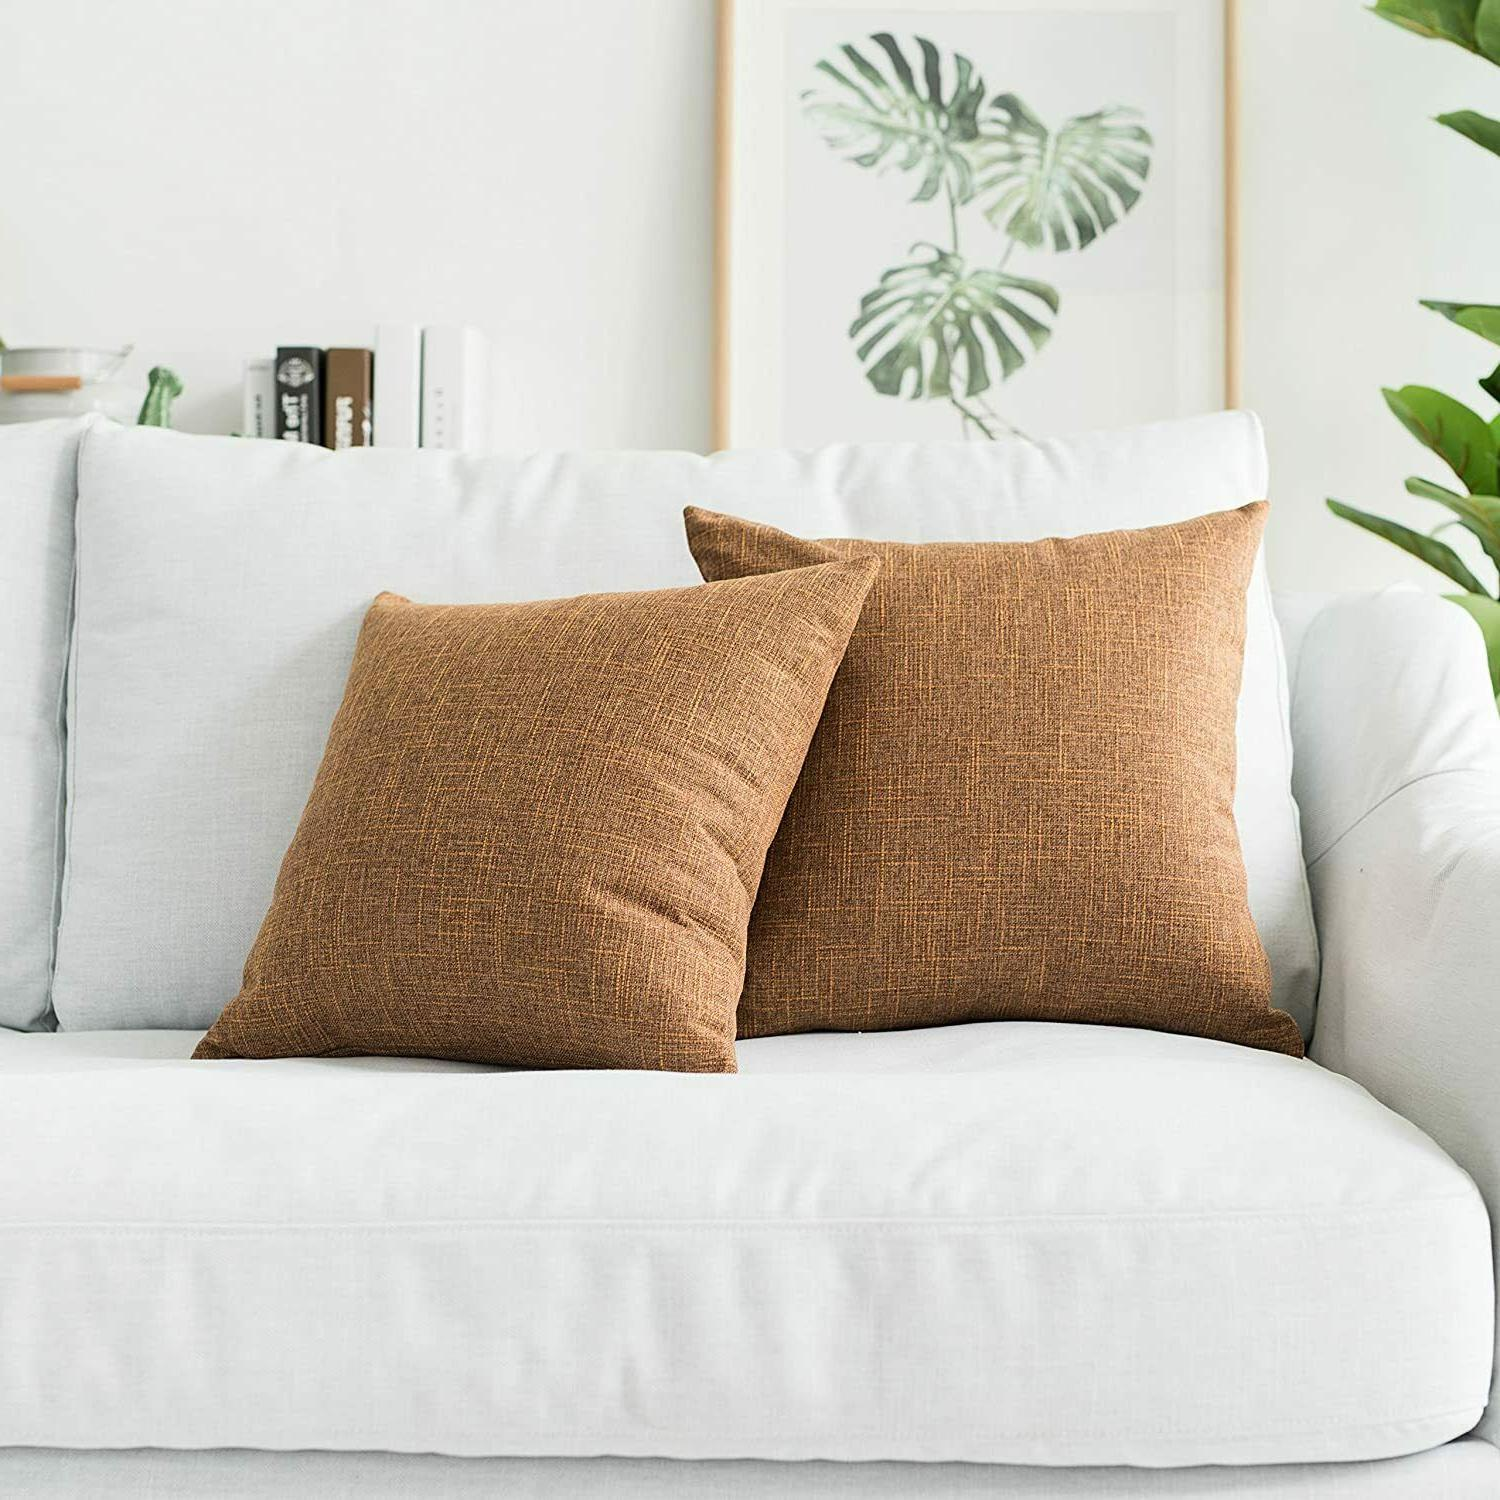 2 decorative throw pillow cover 16 x16